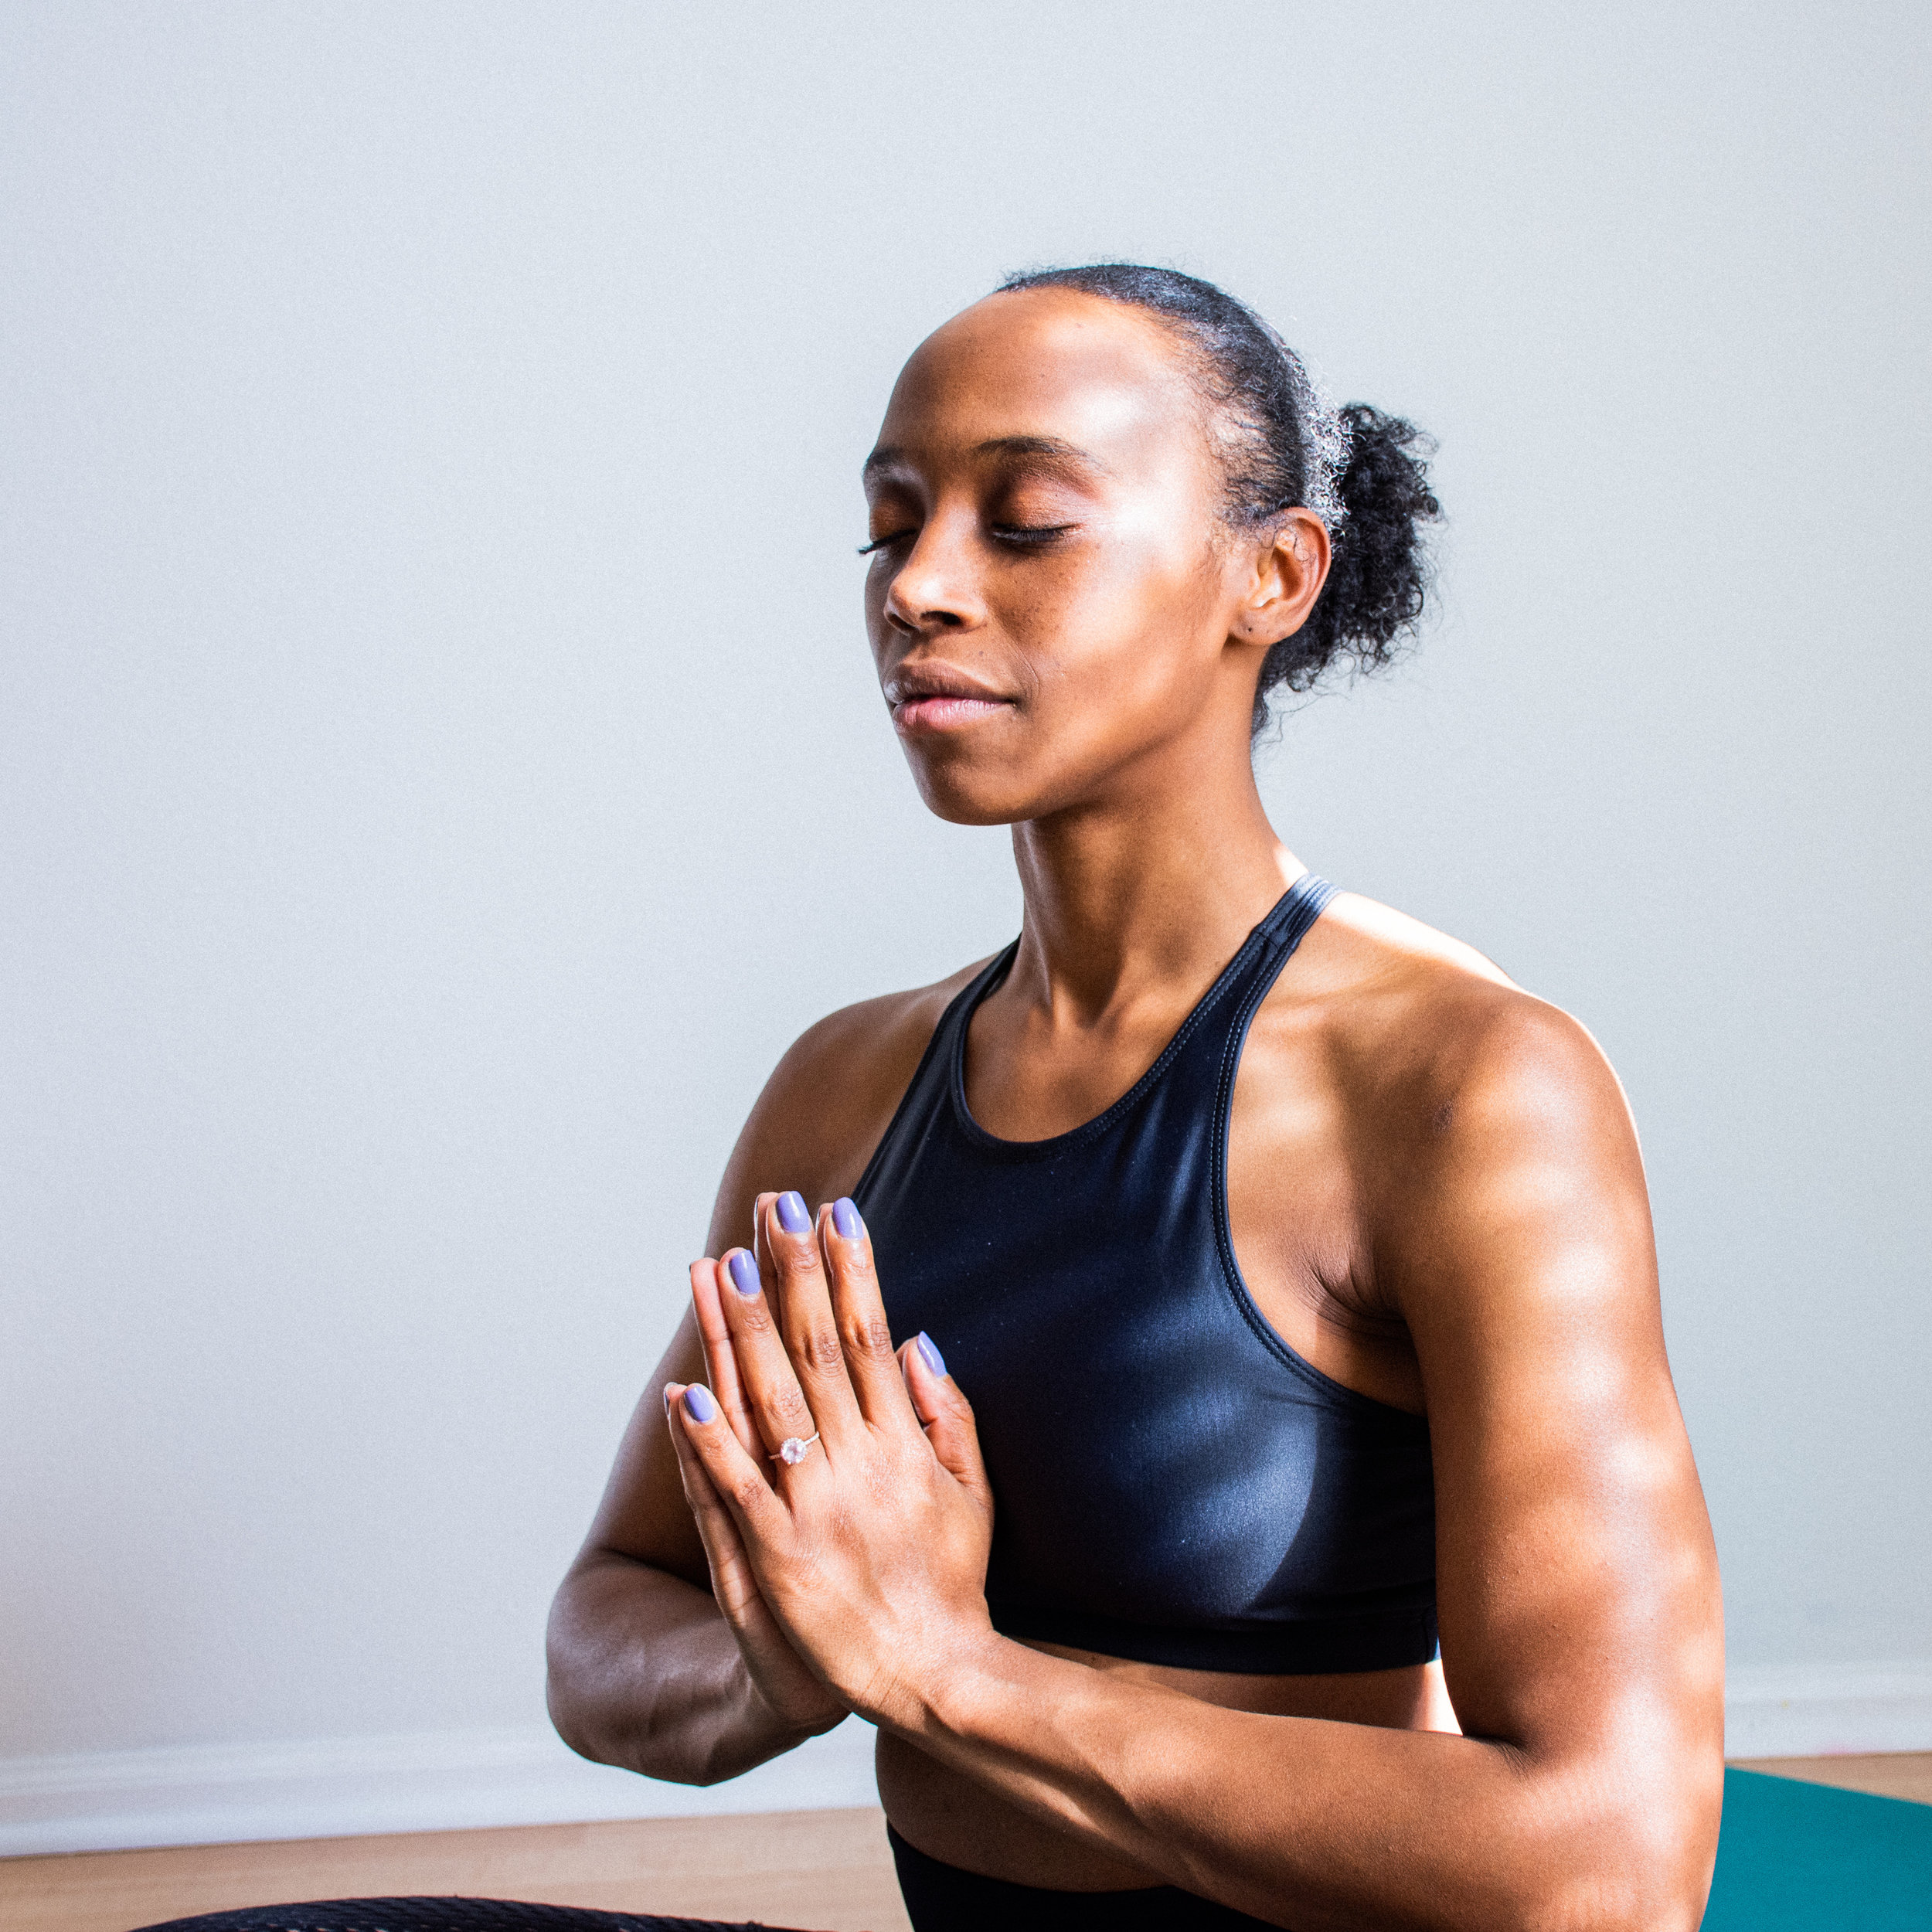 Our Mission - The Phoenix Project strives to bring trauma-informed classes to those who otherwise would not have access to yoga services. We believe that everyone in the Memphis community should be able to receive the healing benefits of a yoga practice, free of charge.Learn More